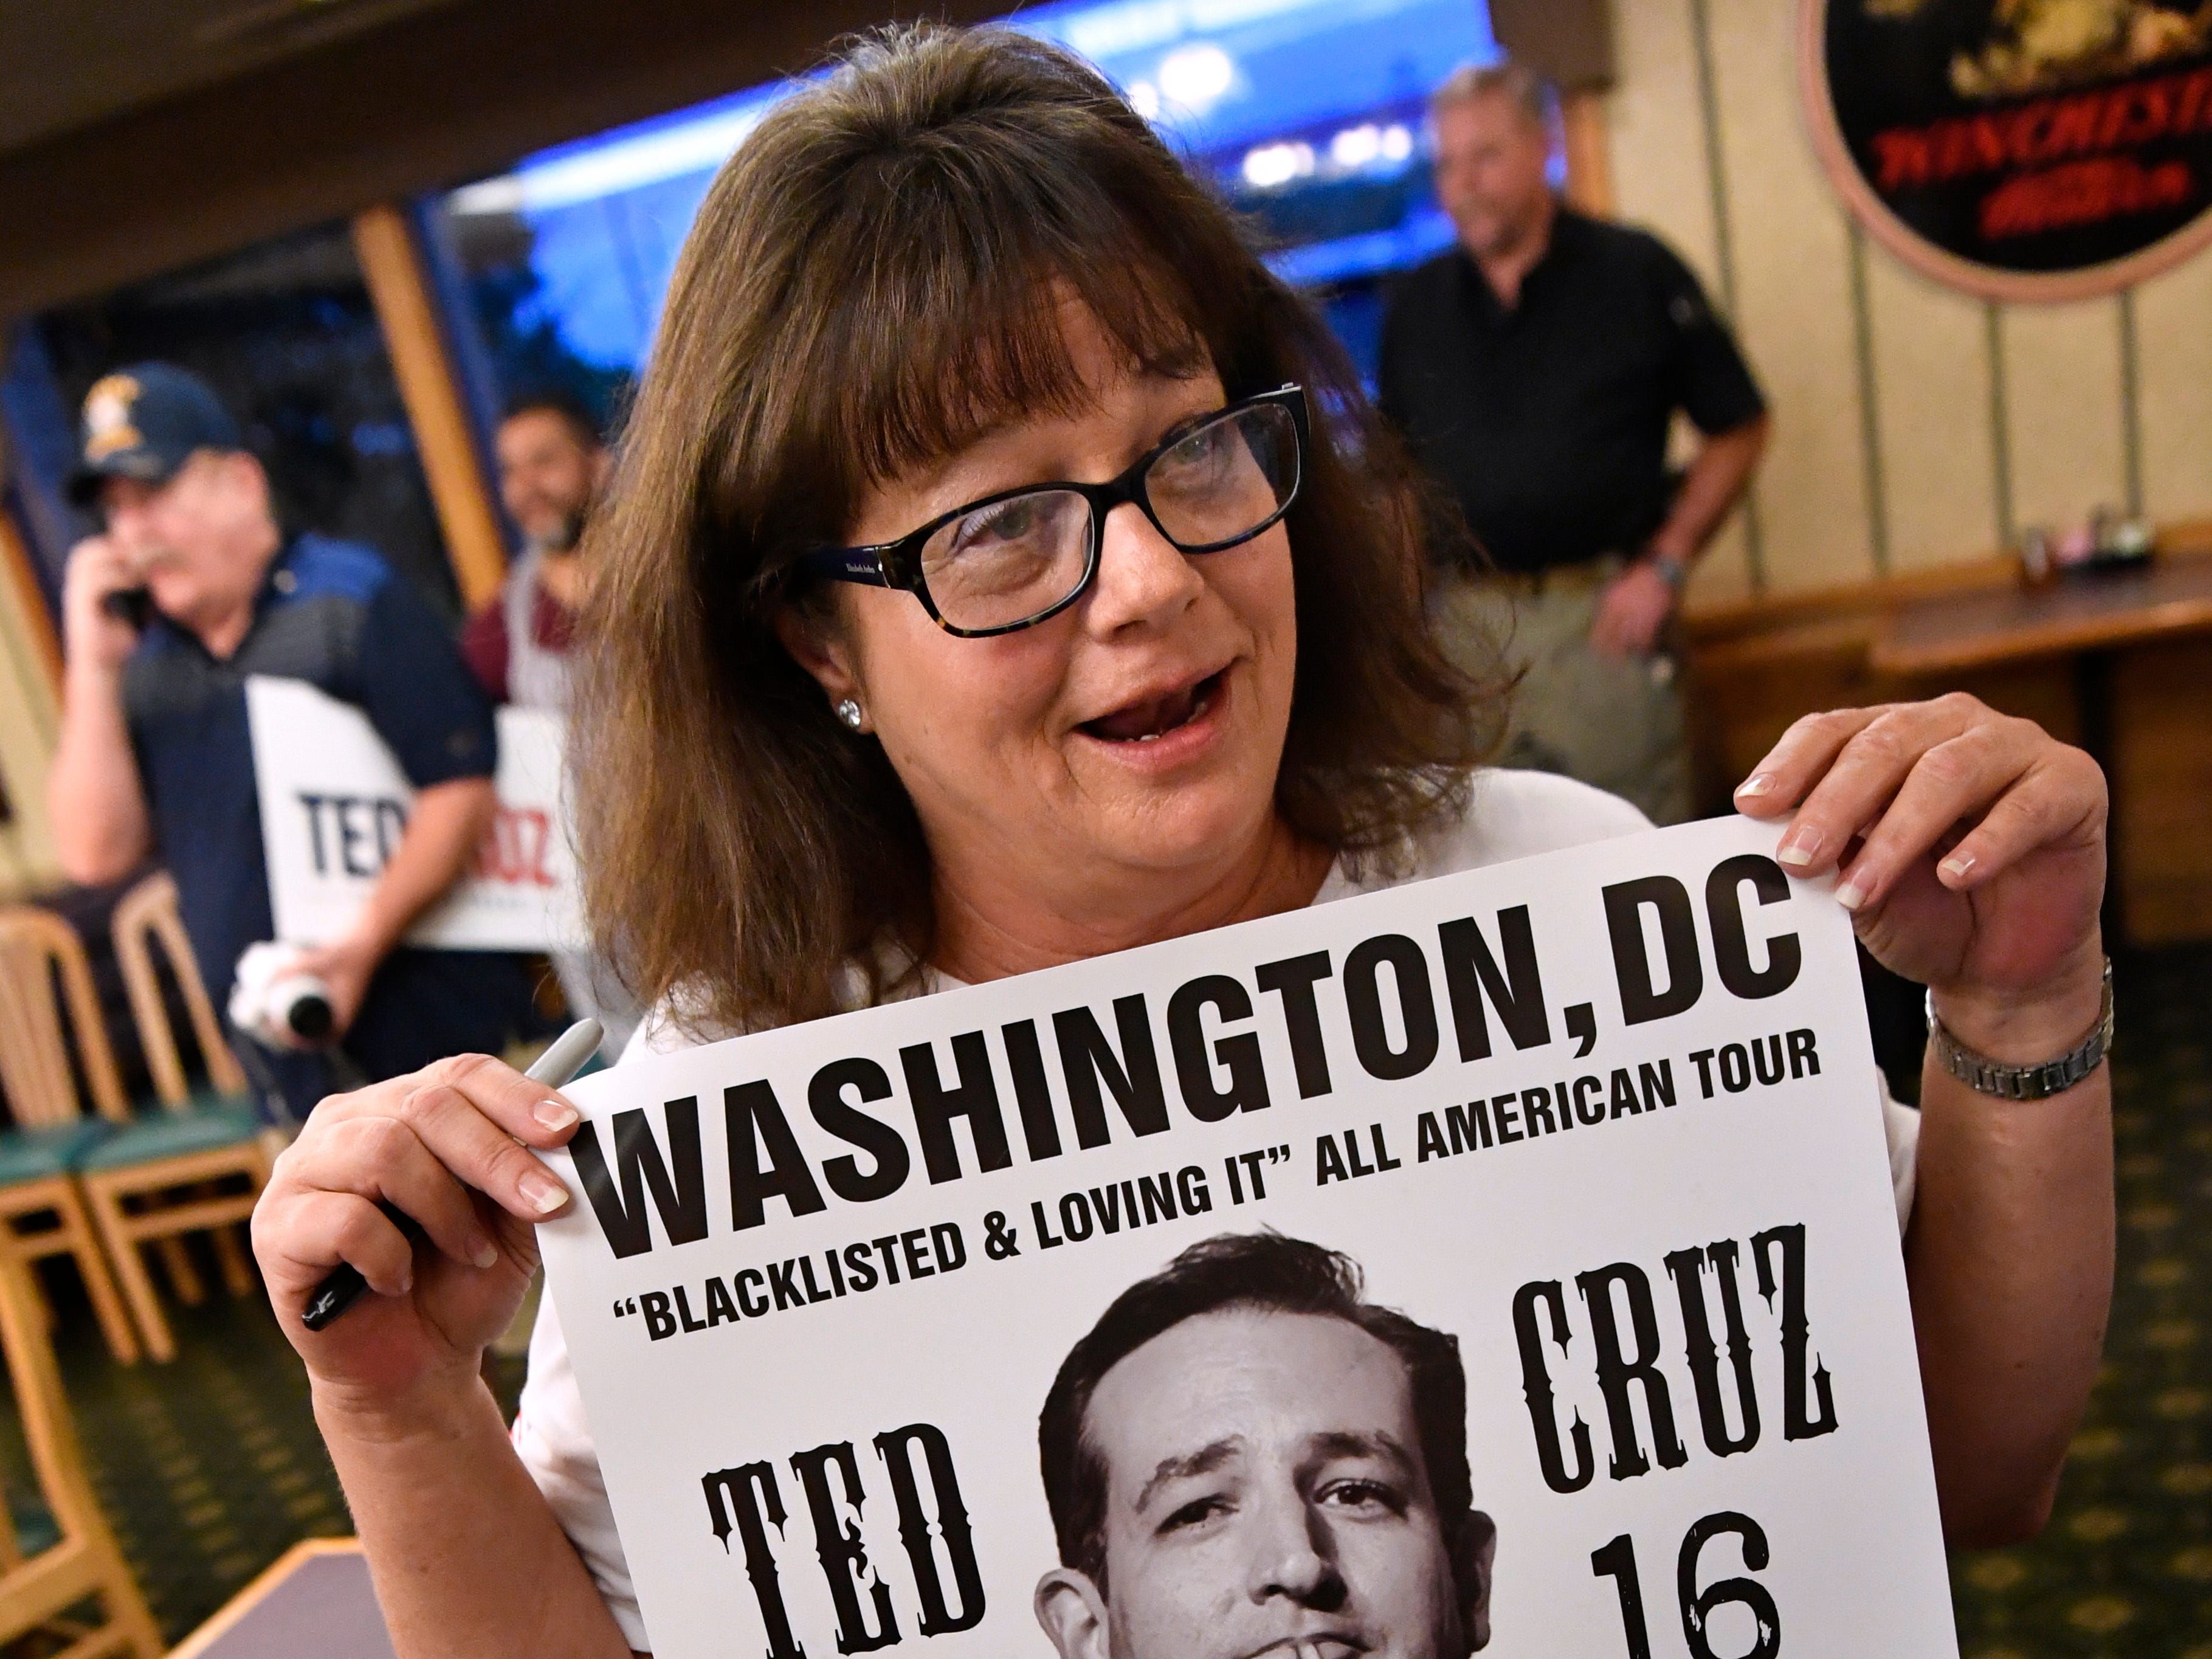 Denise Vannoy holds the poster she brought for Senator Ted Cruz to sign Thursday August 9, 2018. The picture is a composite made by Los Angeles artist Sabo. Cruz spoke to and greeted supporters for over 90 minutes in a town hall meeting at Underwood's Cafeteria in Brownwood.